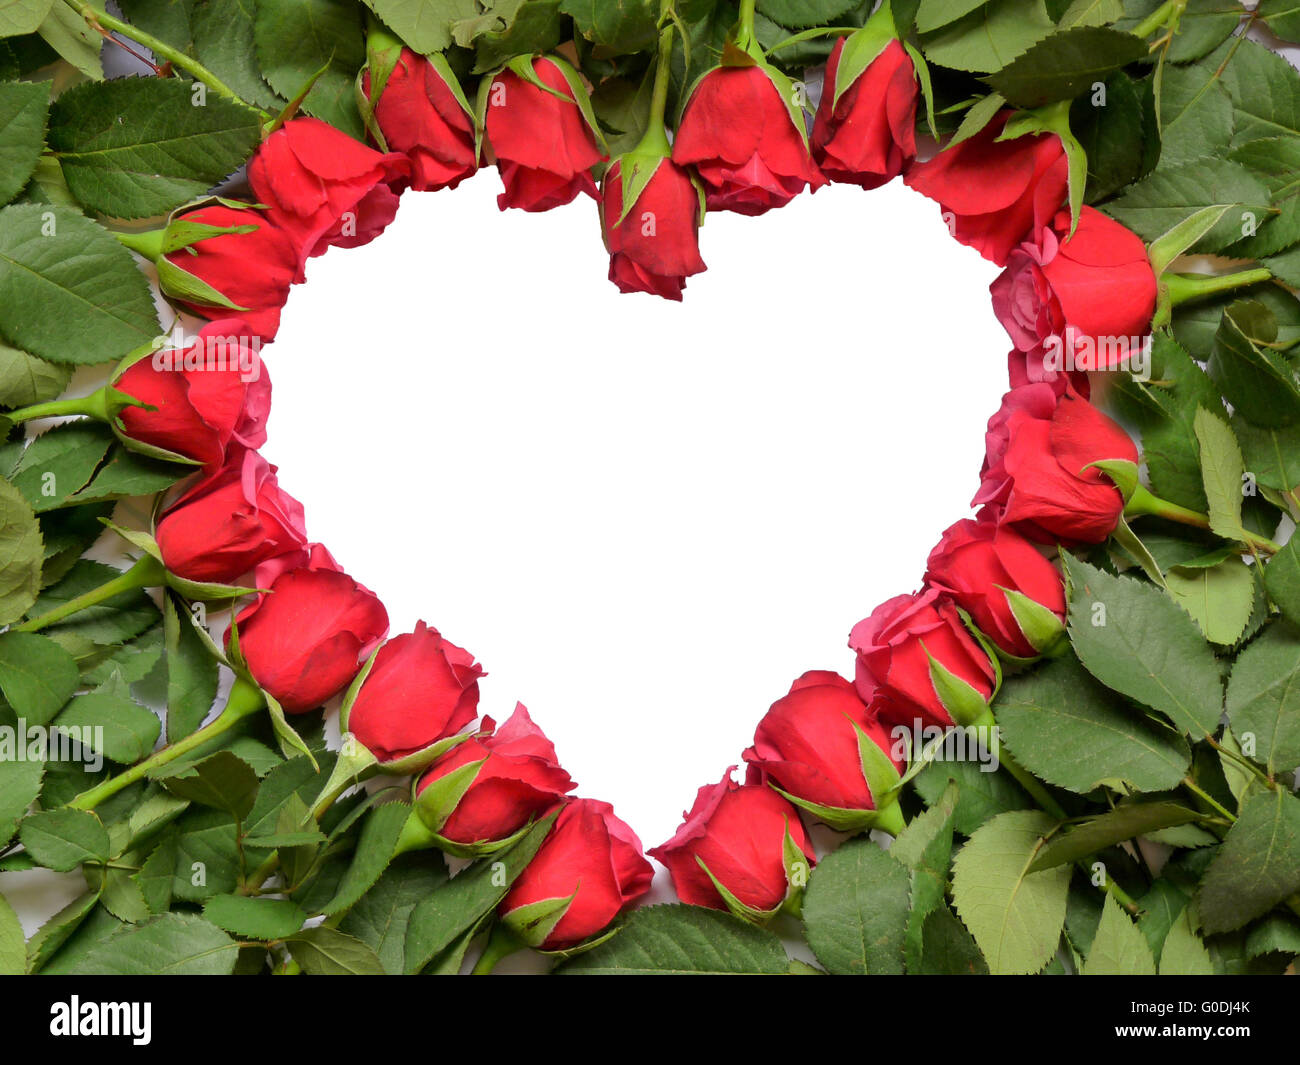 Heart made of red roses on stem - Stock Image